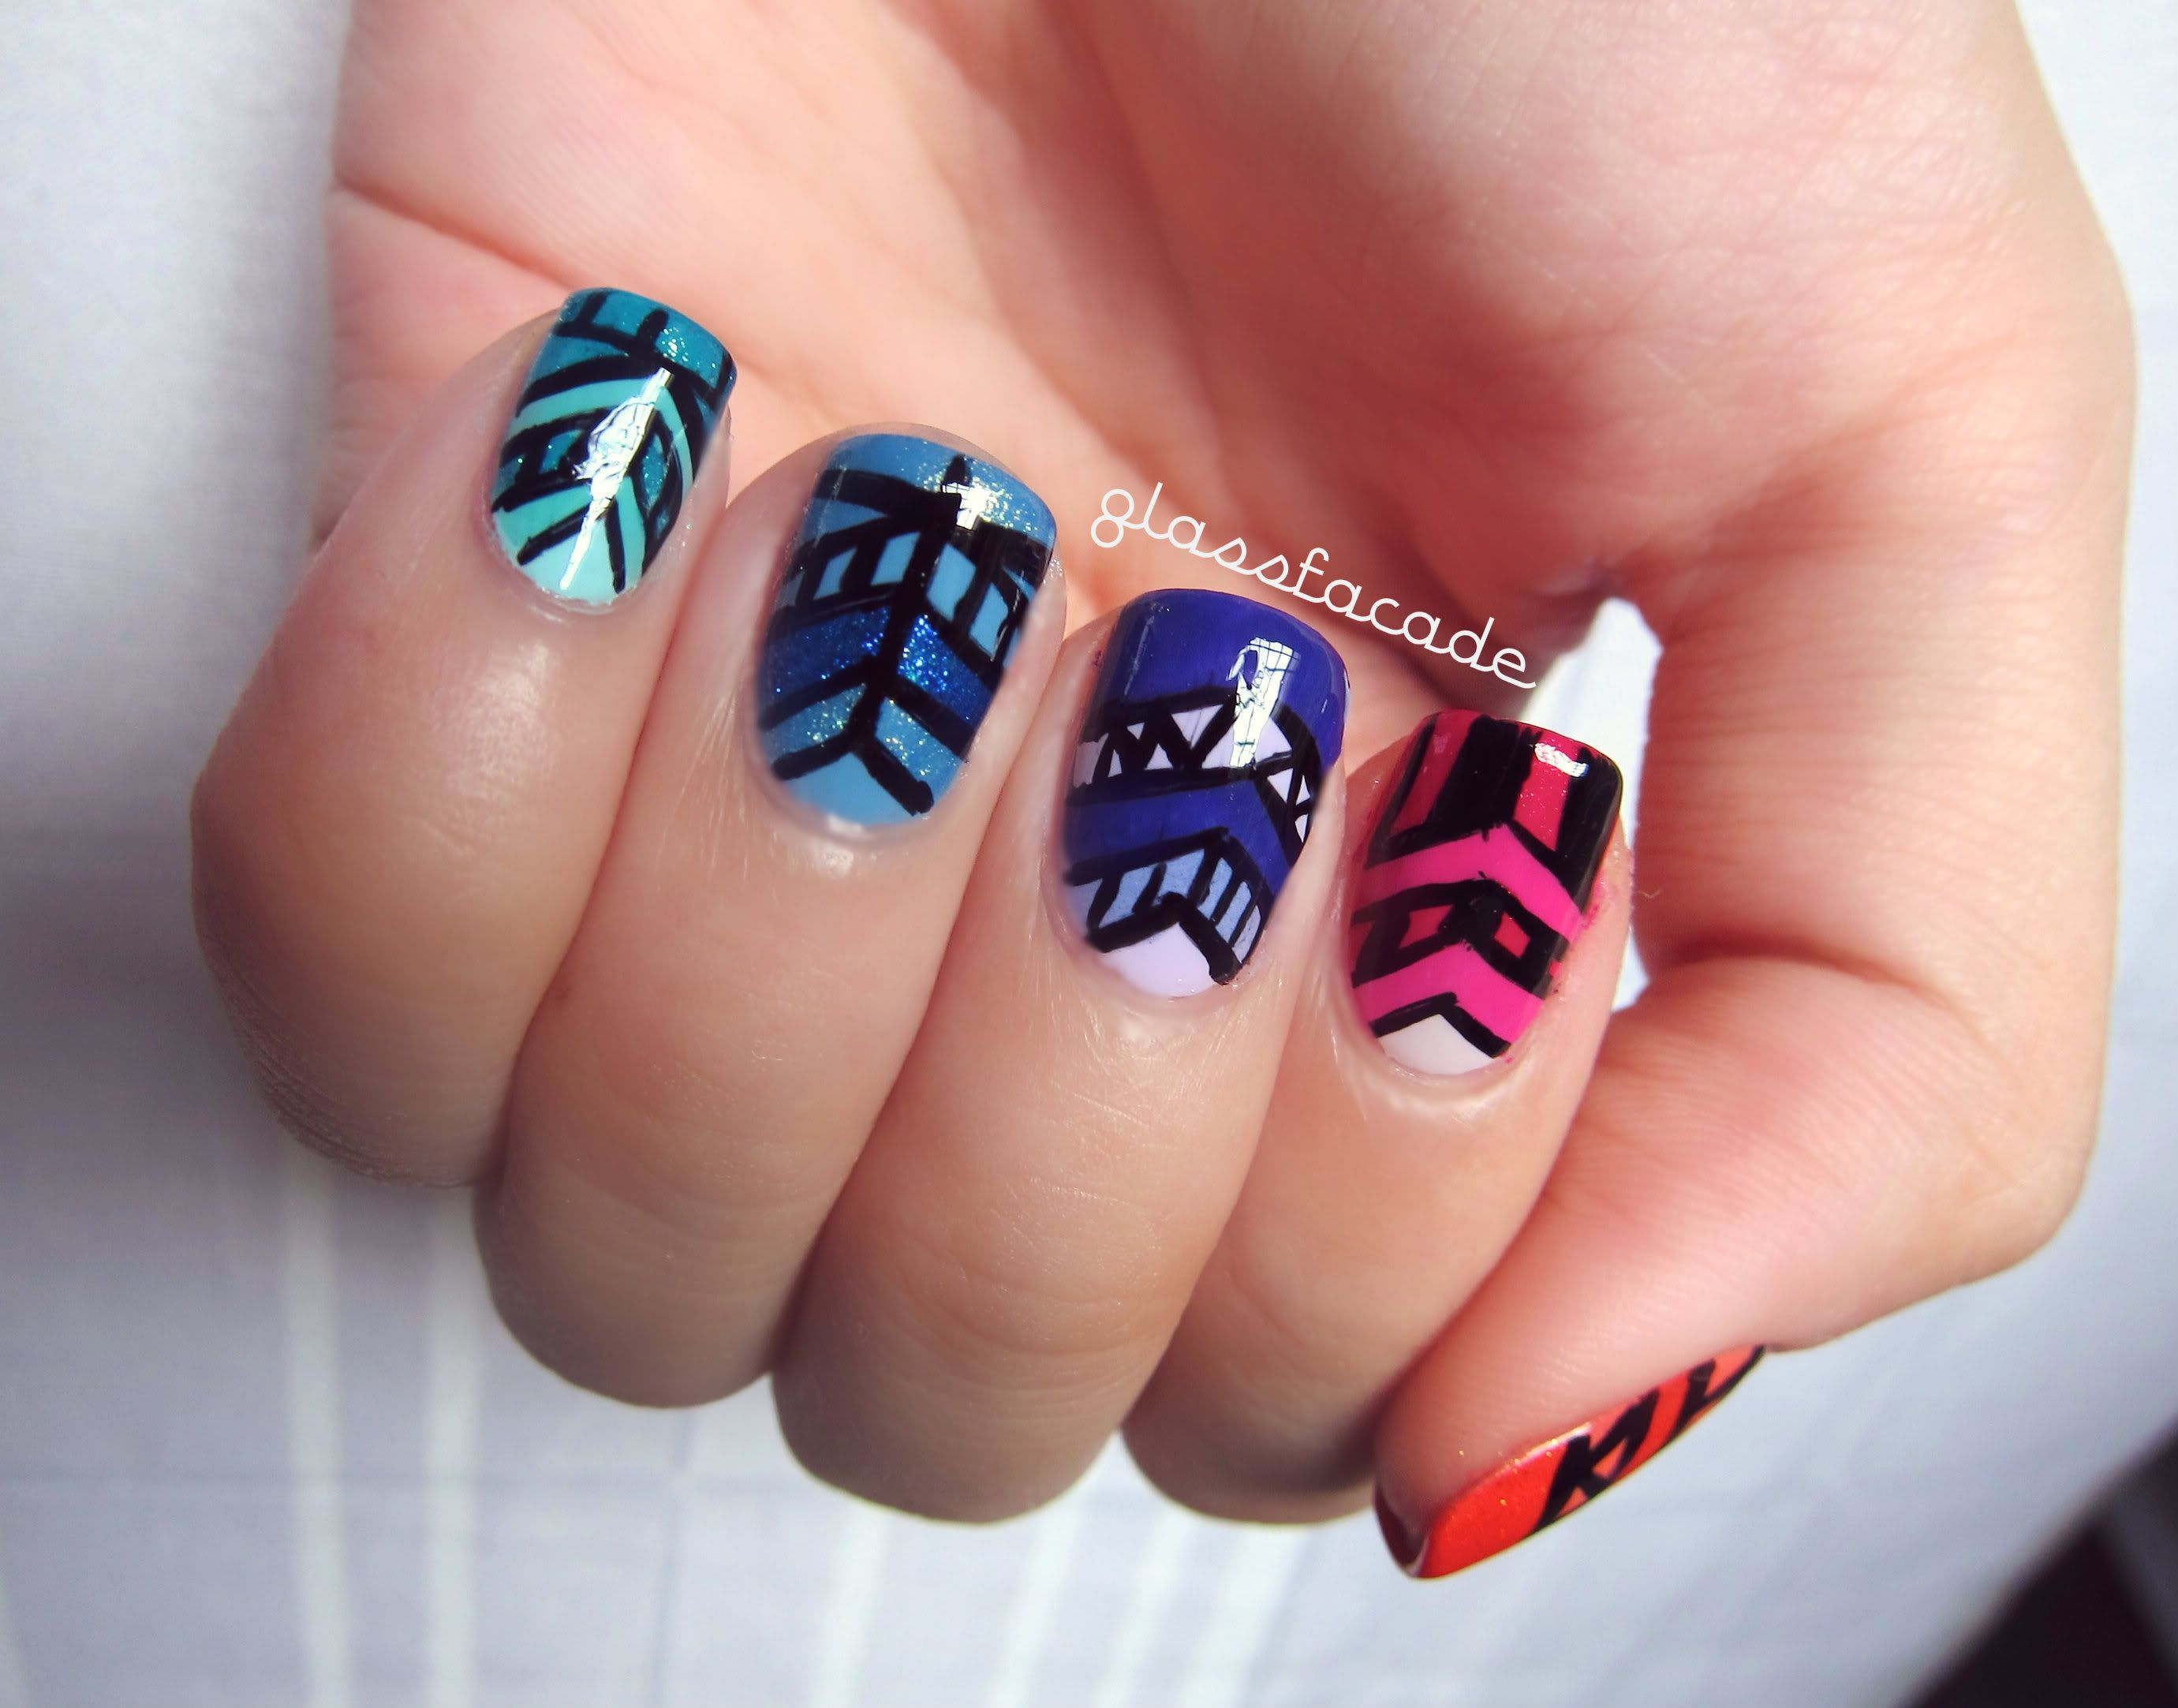 Different Design On Each Nail Tribal Nail Design With A Different